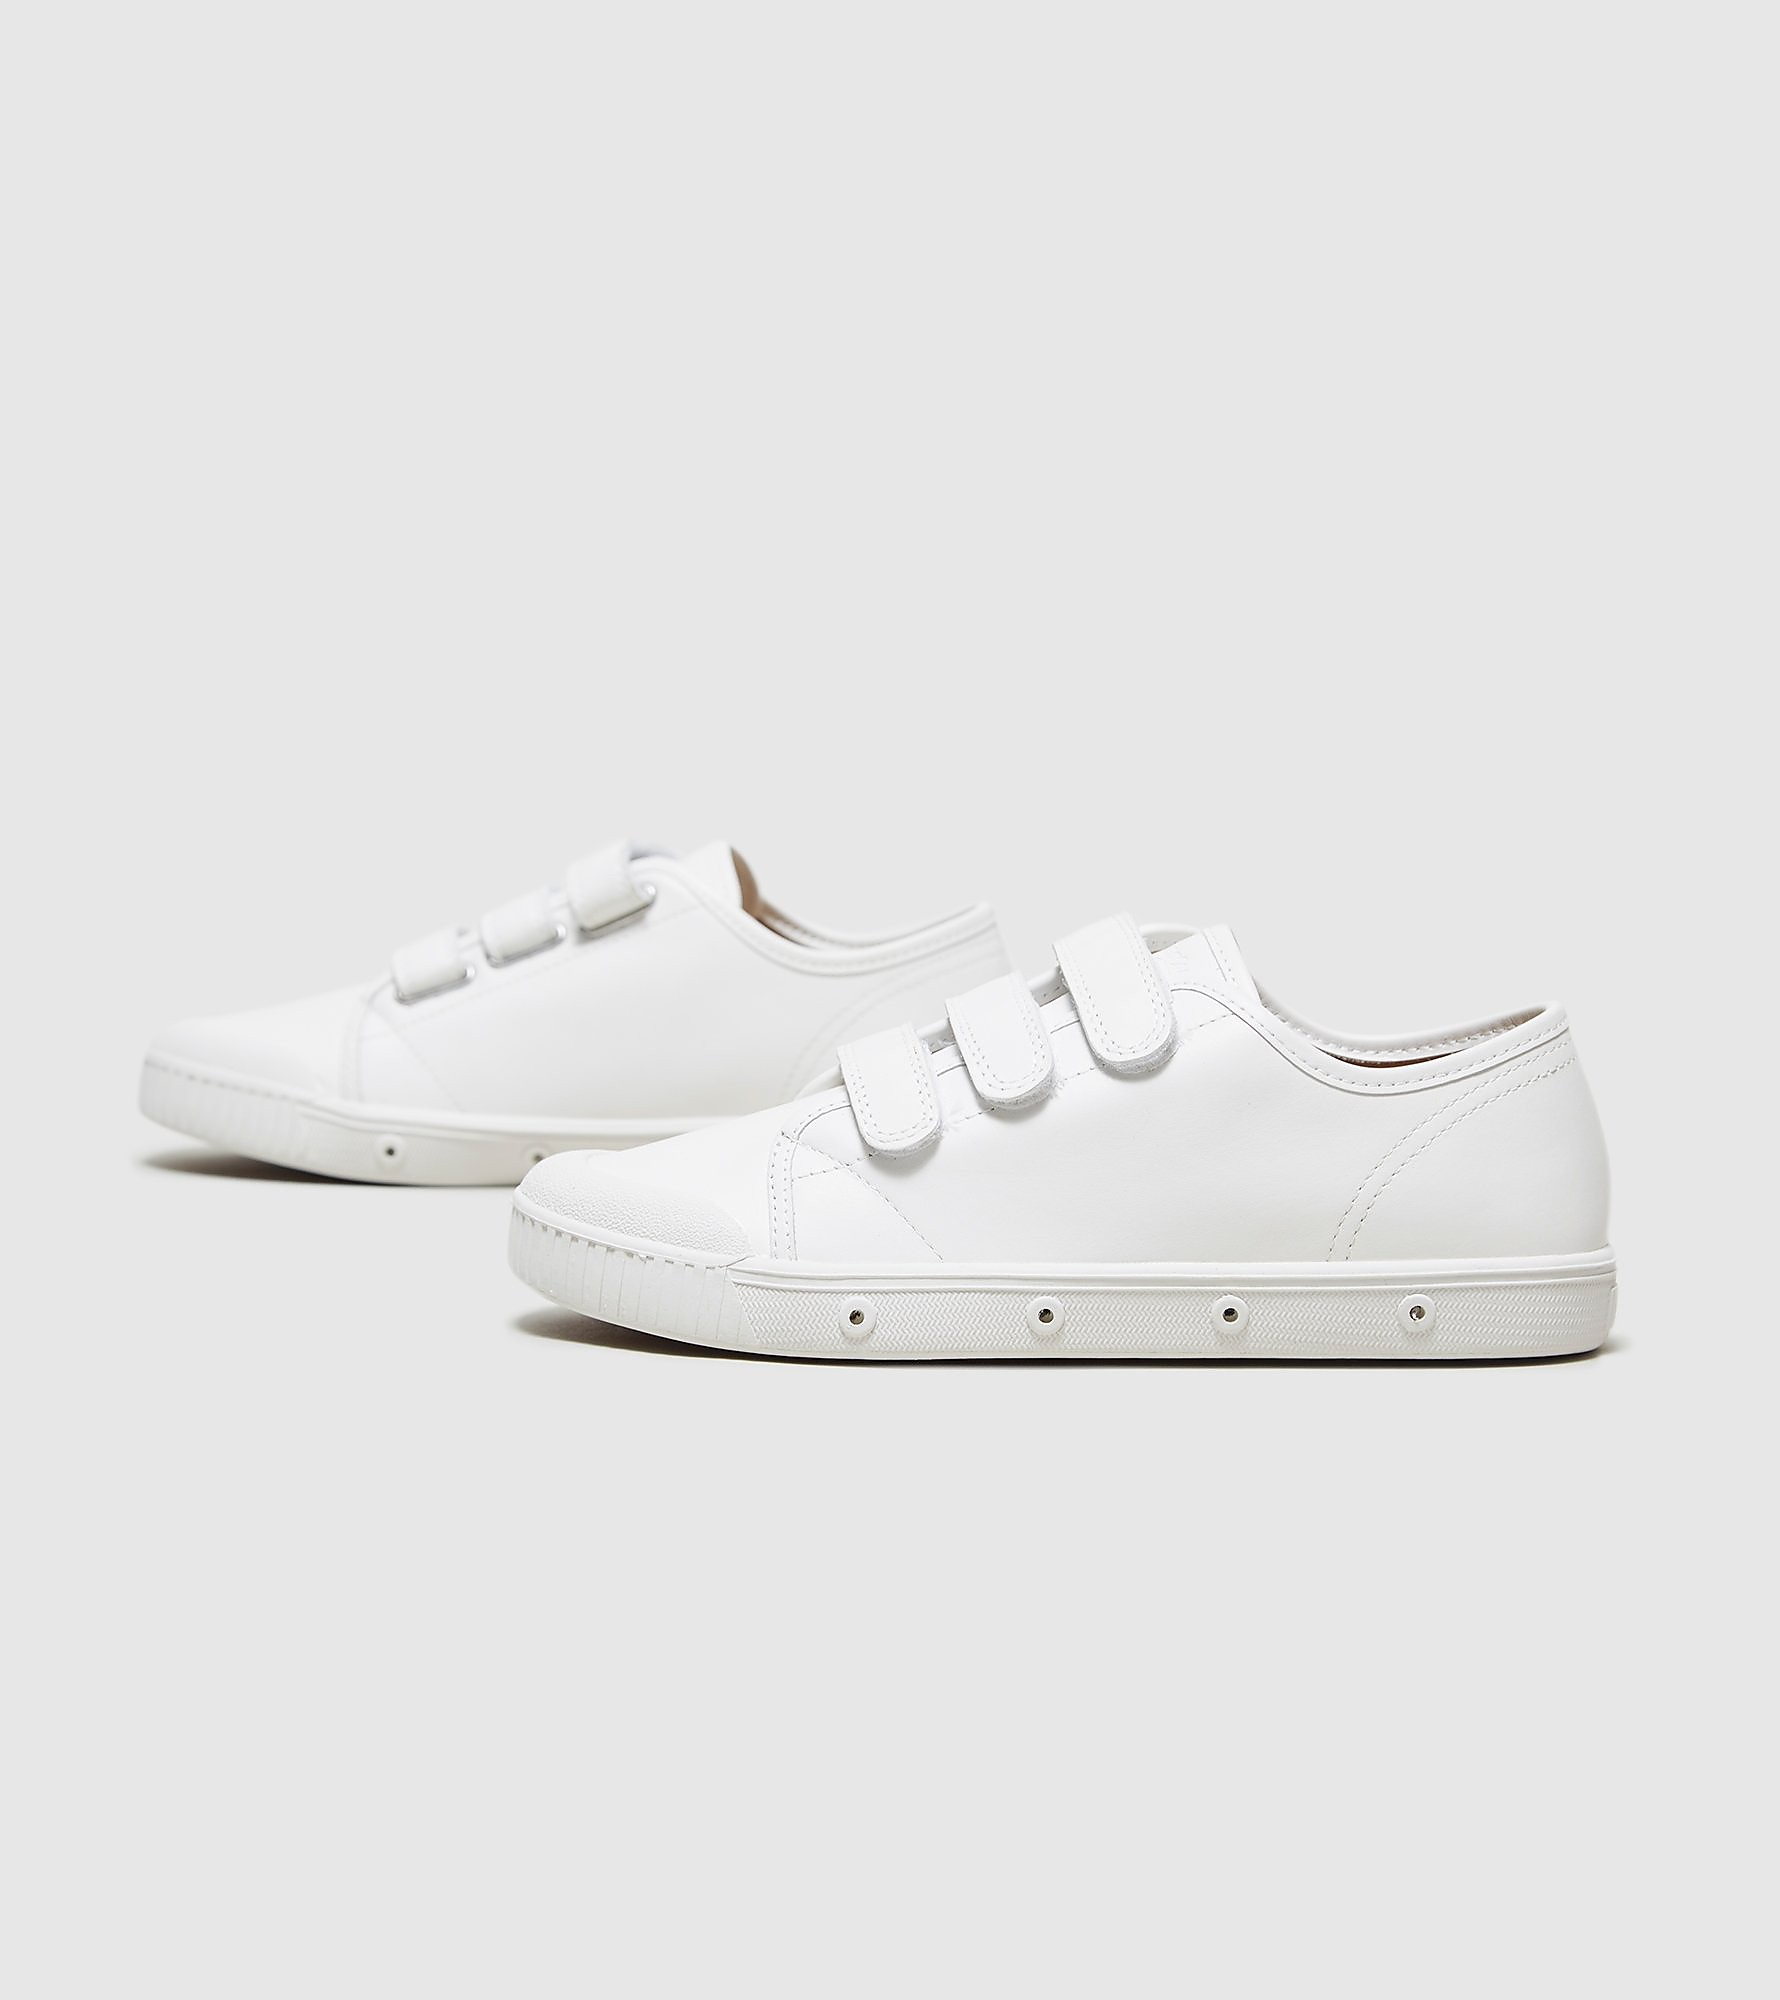 Spring Court G2 Velcro Low Women's